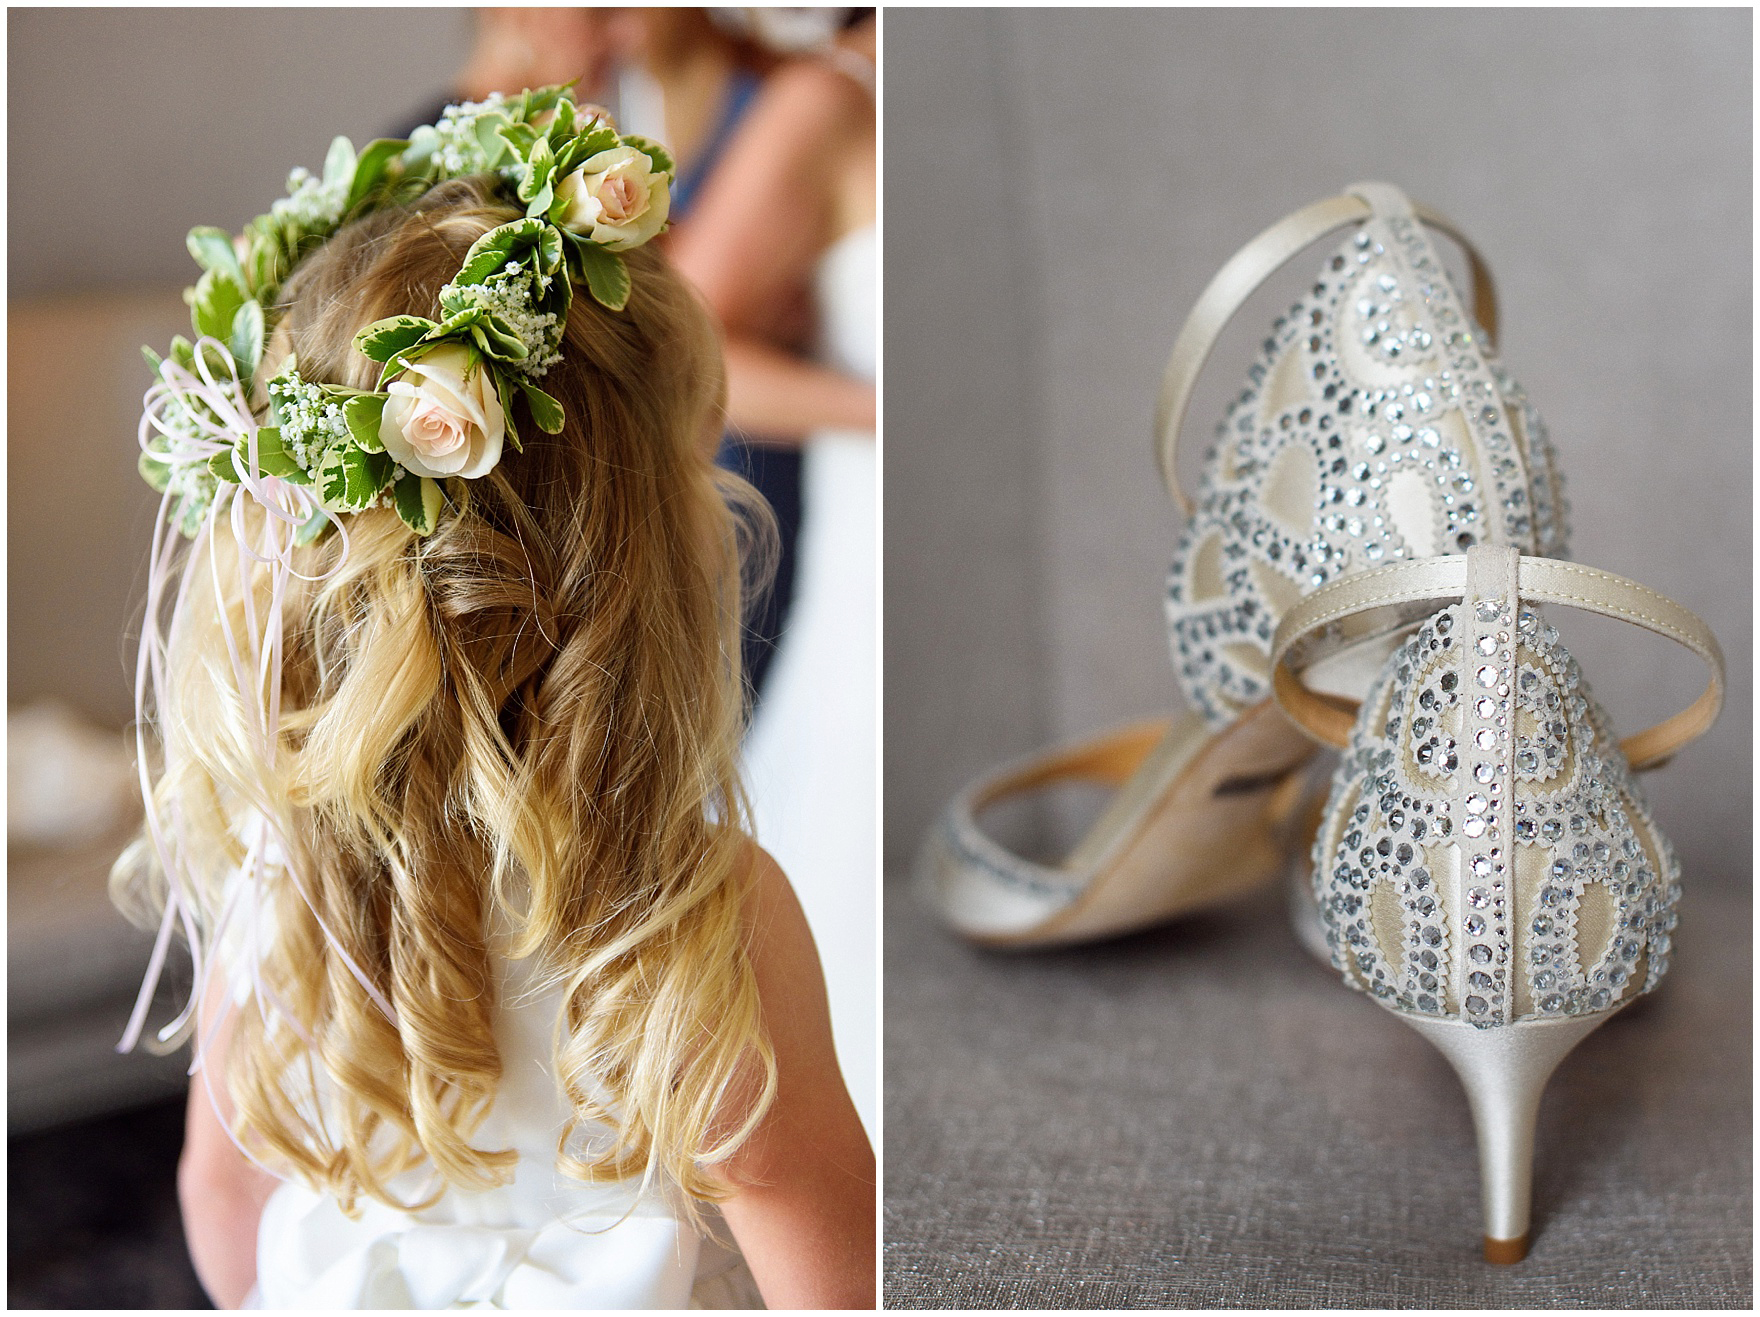 Details of crystal beaded wedding shoes for an Itasca Country Club Illinois wedding.